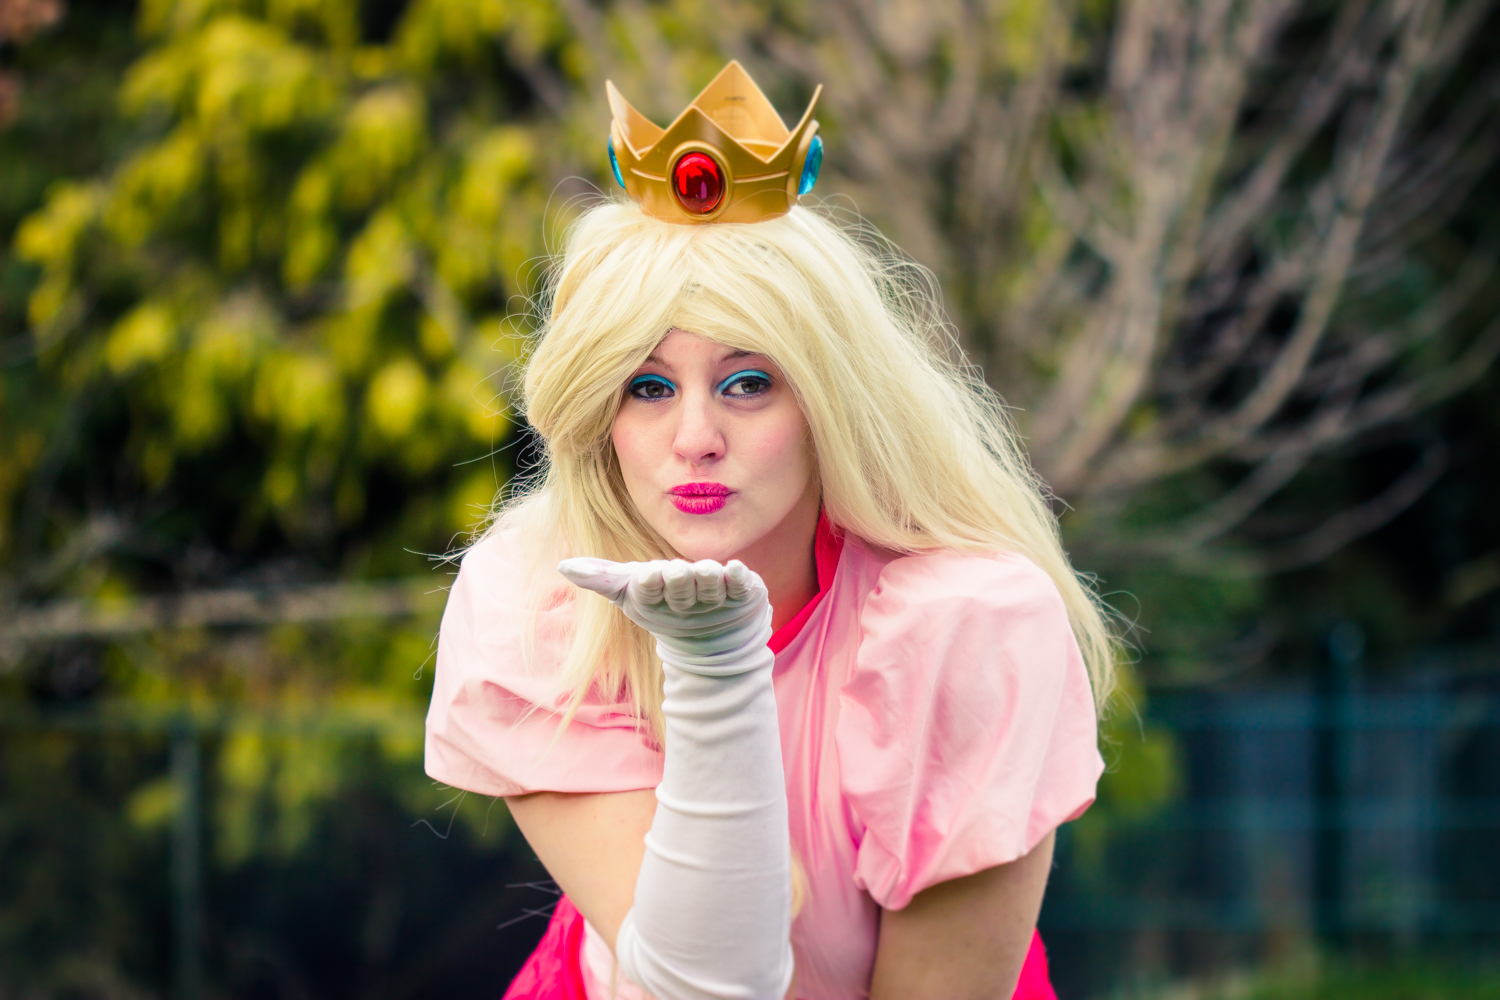 cindy-princess-peach-00104